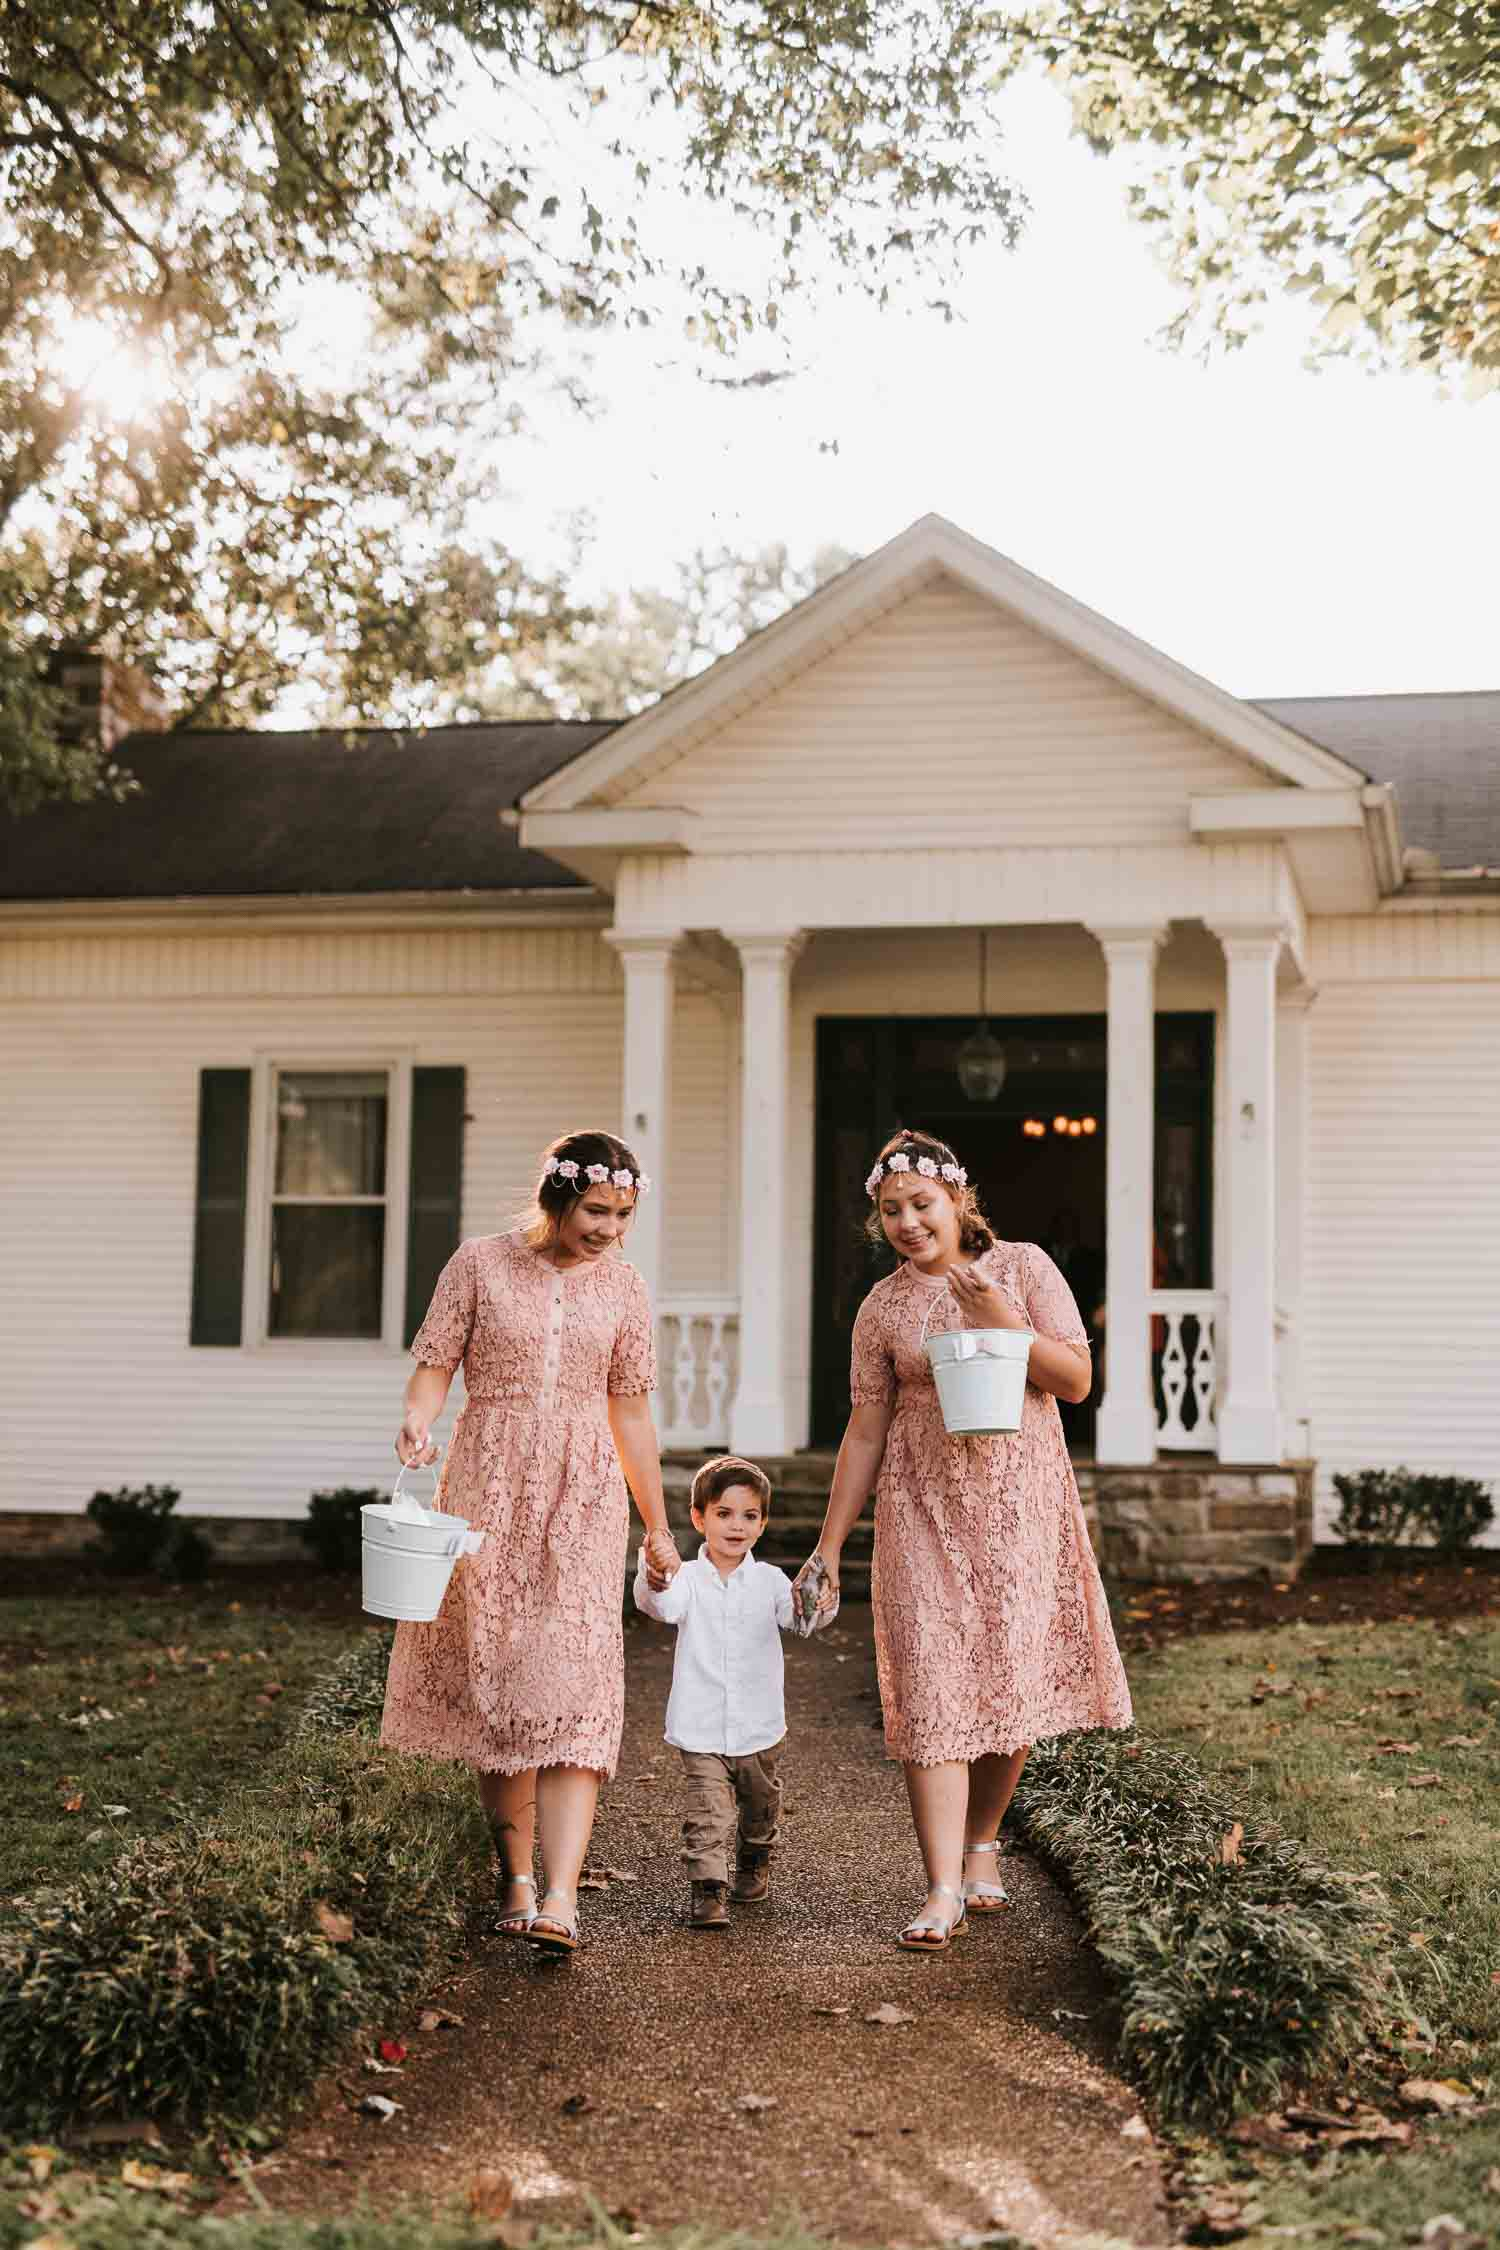 NashvilleWeddingPhotographer (1 of 1).jpg